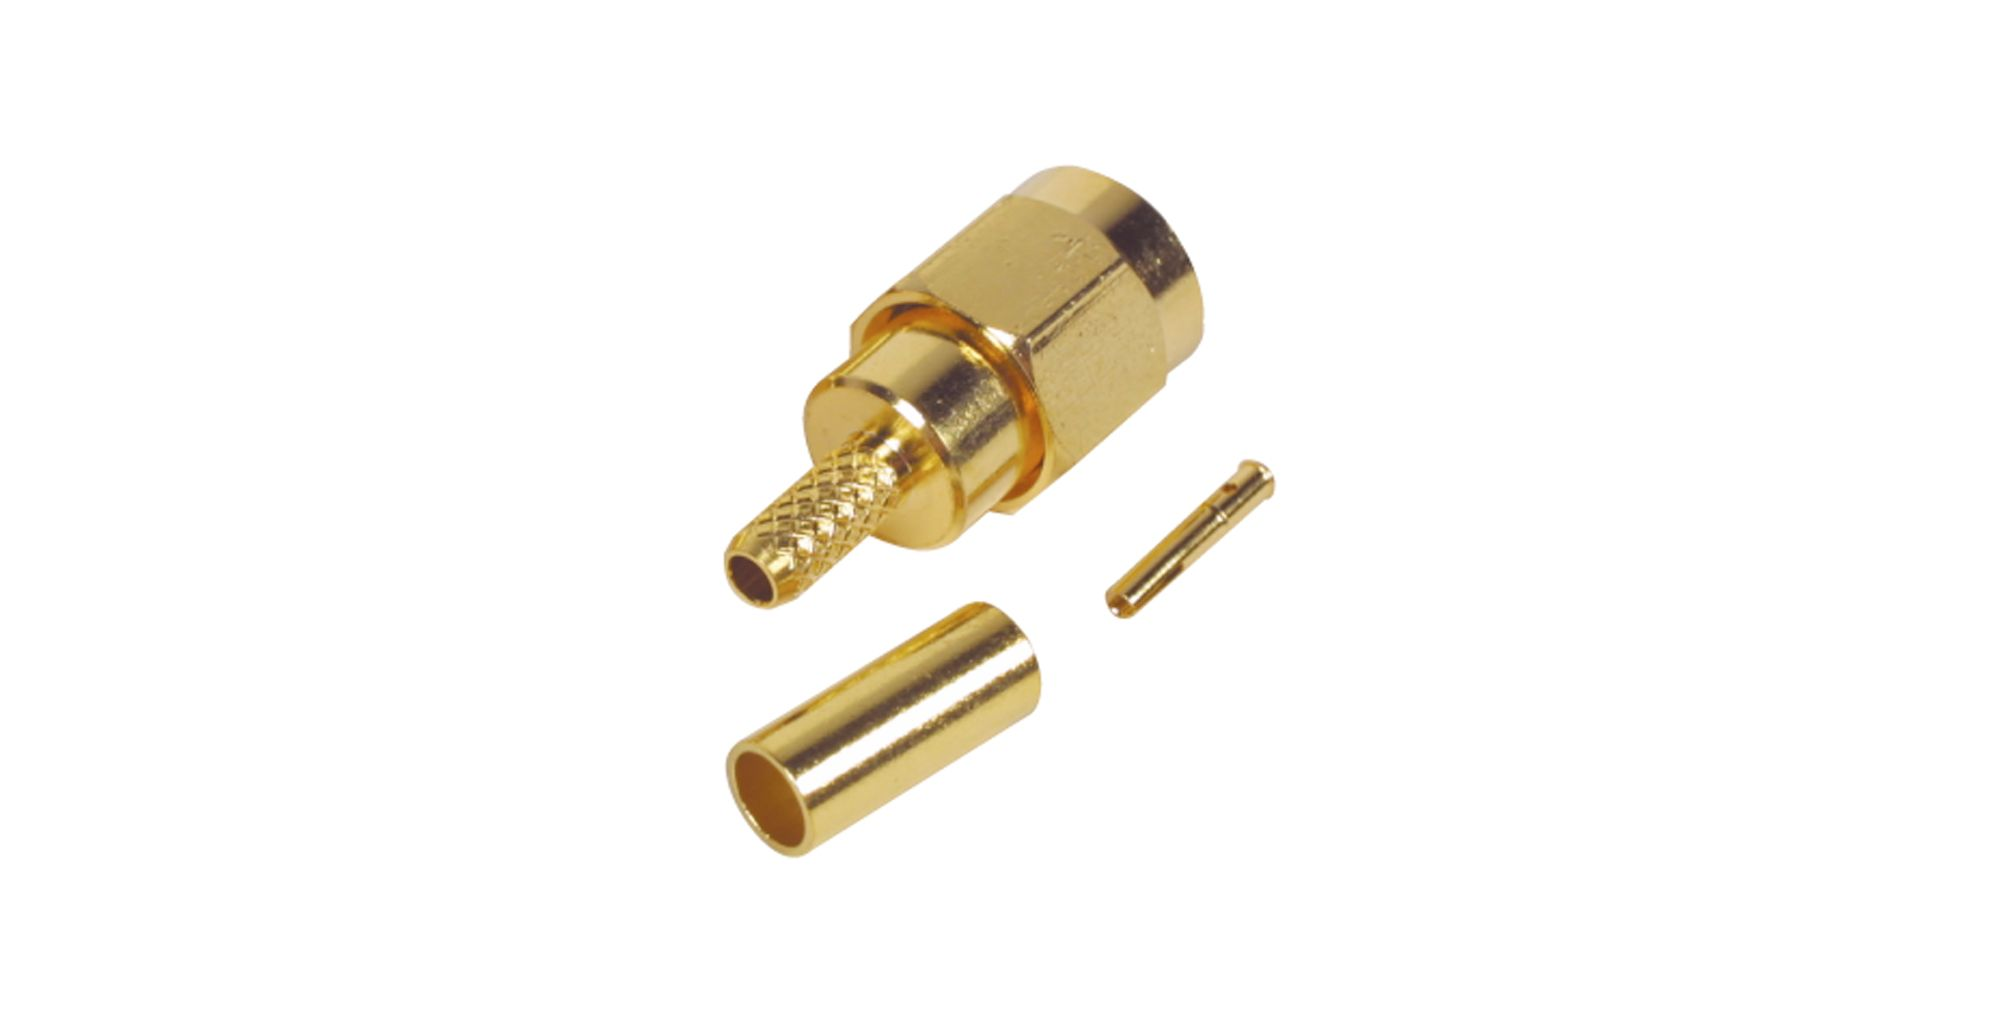 SMA Male To Male Crimp Plug RF Connector For Rg58